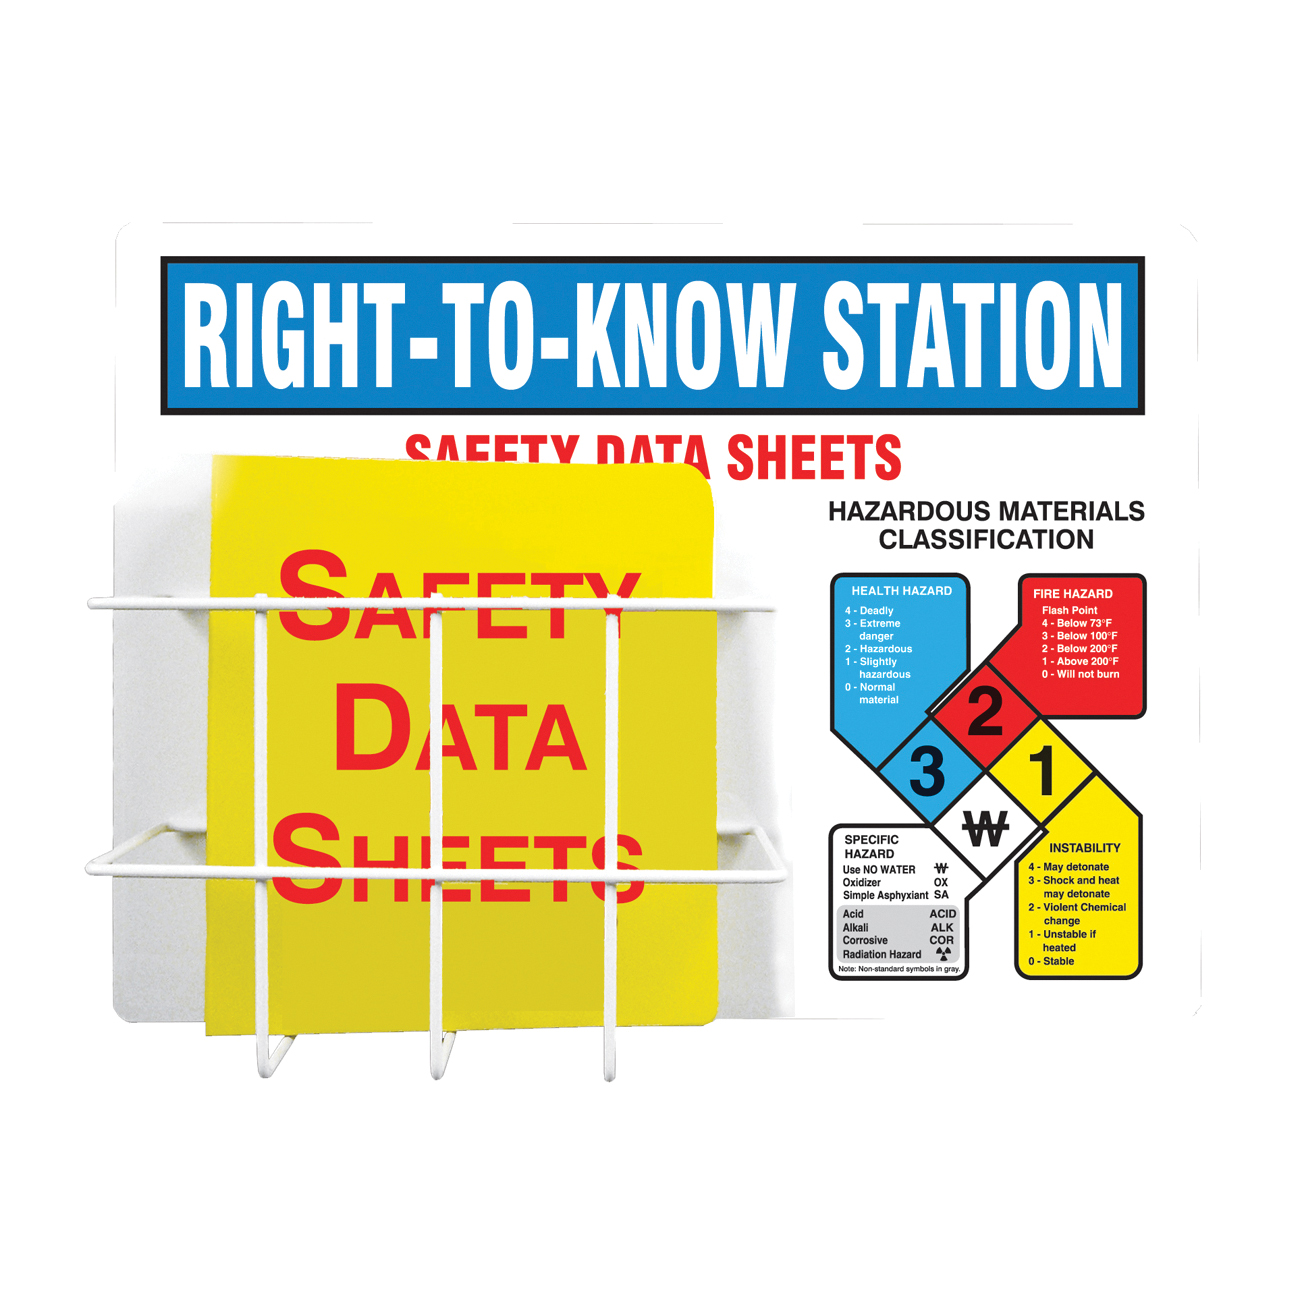 Accuform® ZRS347 RTK-NFPA Center Board Kit, RIGHT TO KNOW STATION Legend, English, 18 in H x 24 in W, Aluminum, Wall Mount